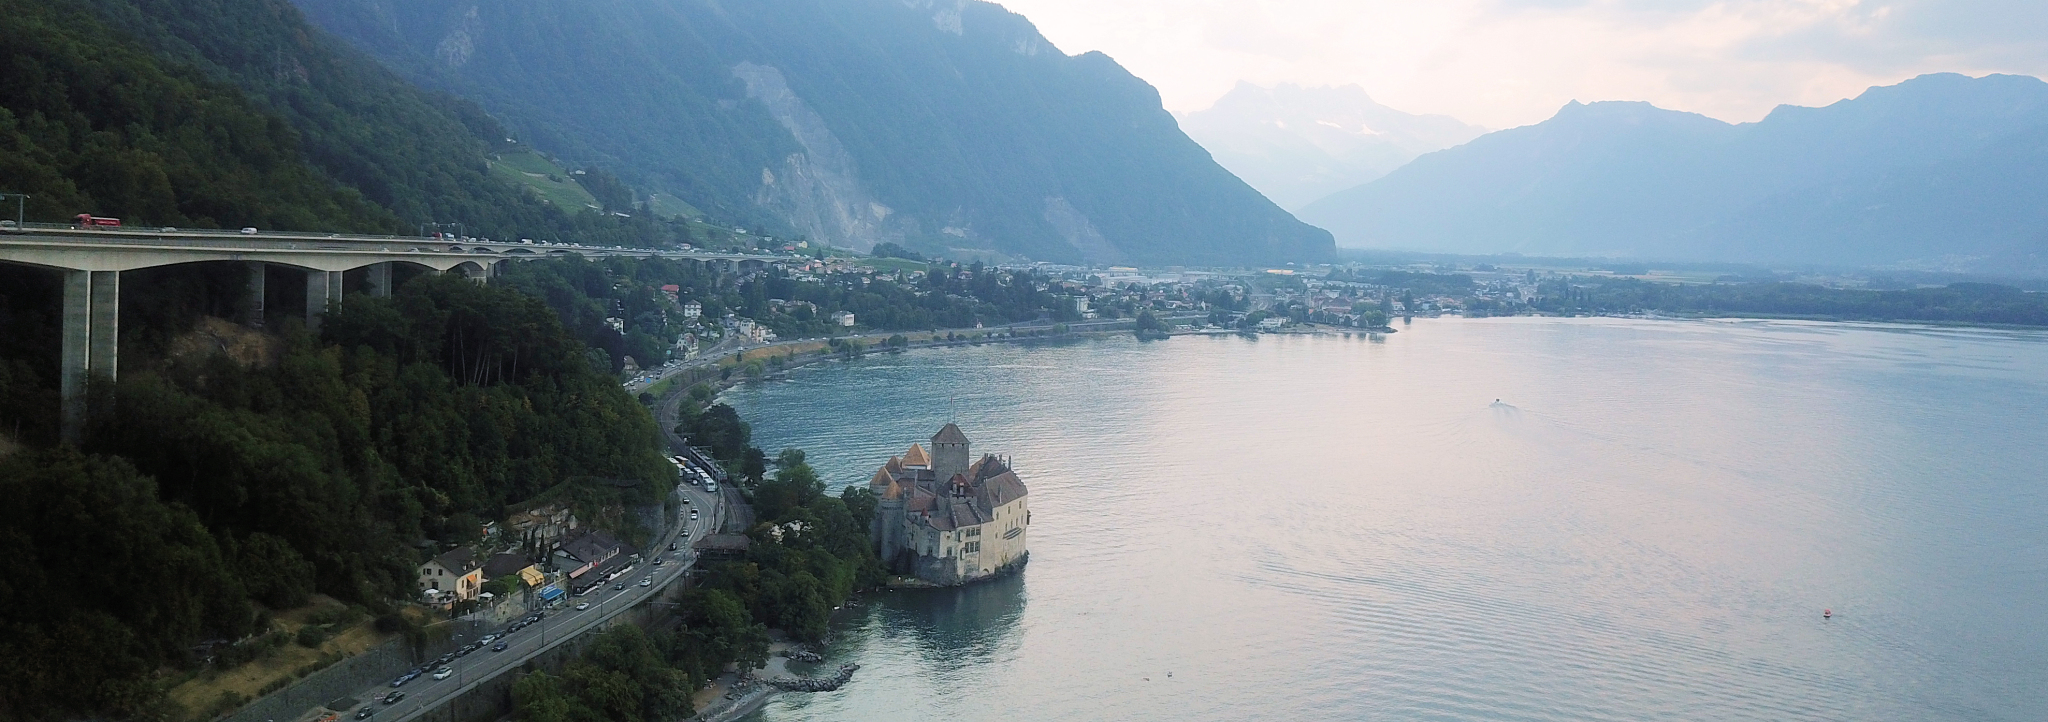 Montreux on the shores of Lake Geneva is also in the heart of the Alps